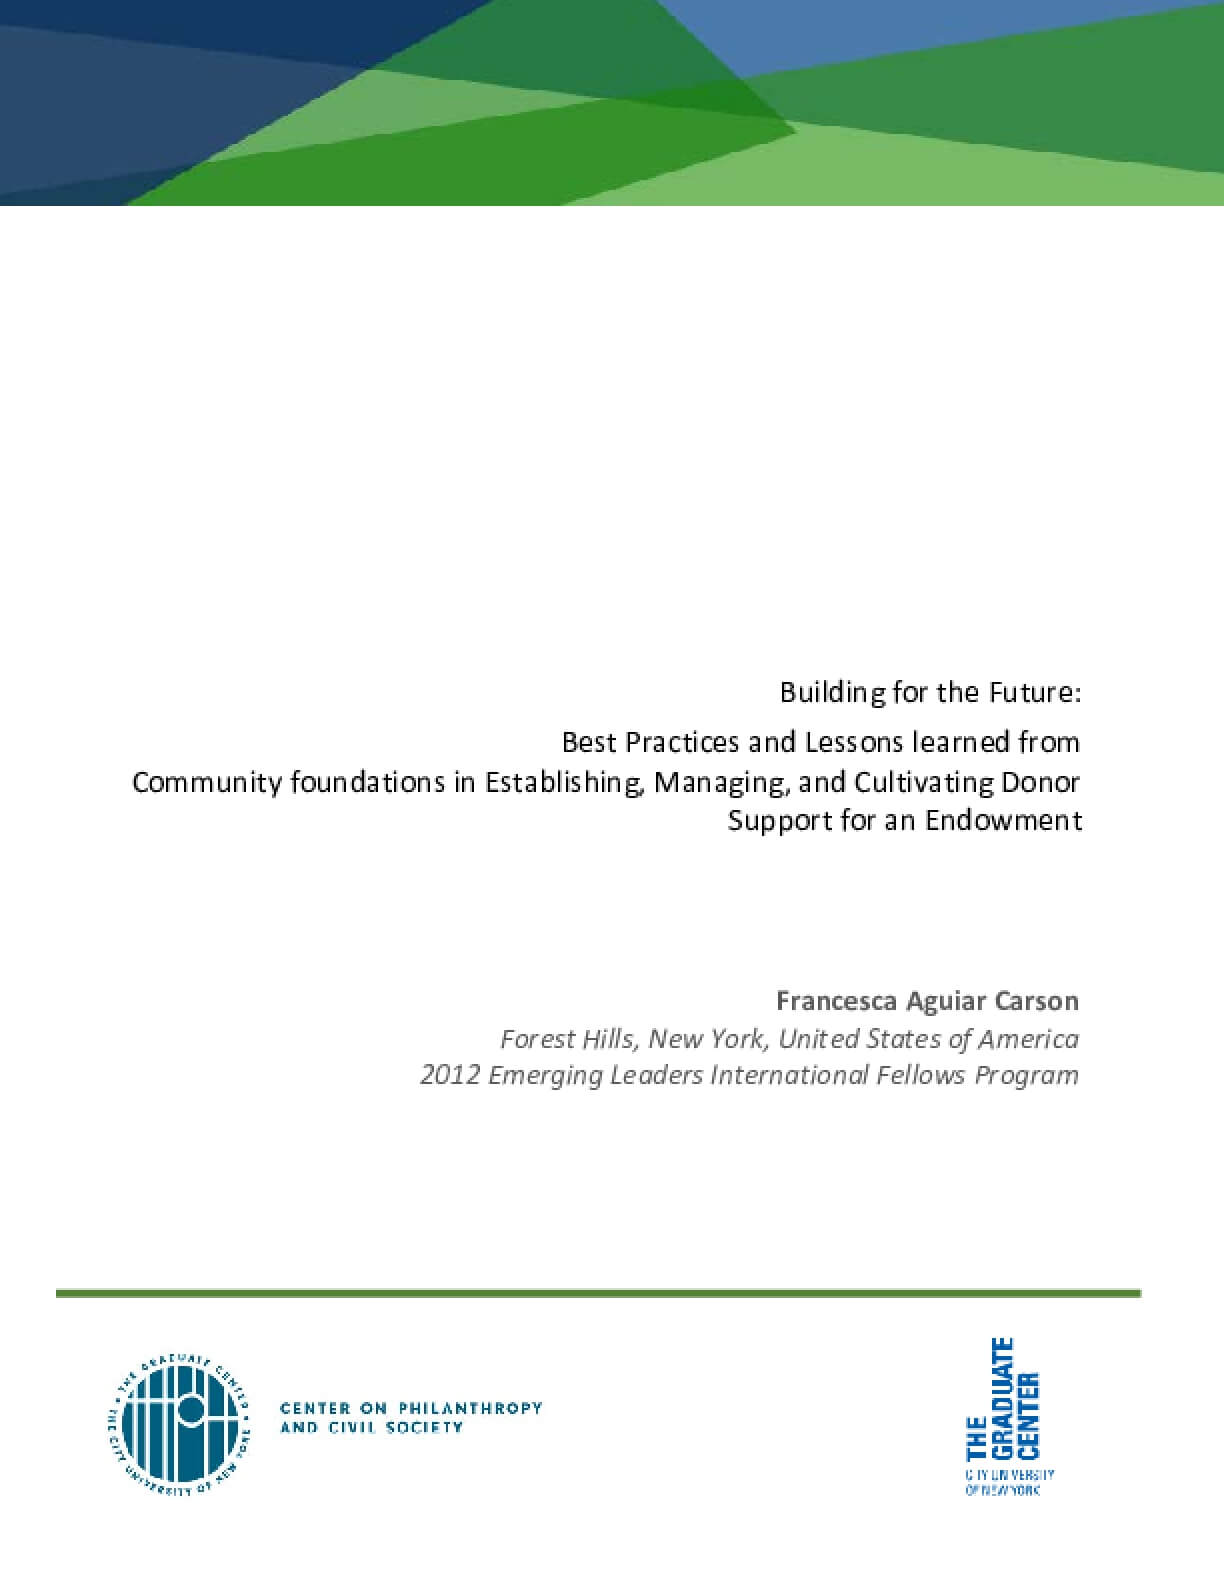 Building for the future: Best practices and lessons learned from community foundations in establishing, managing, and cultivating donor support for an endowment